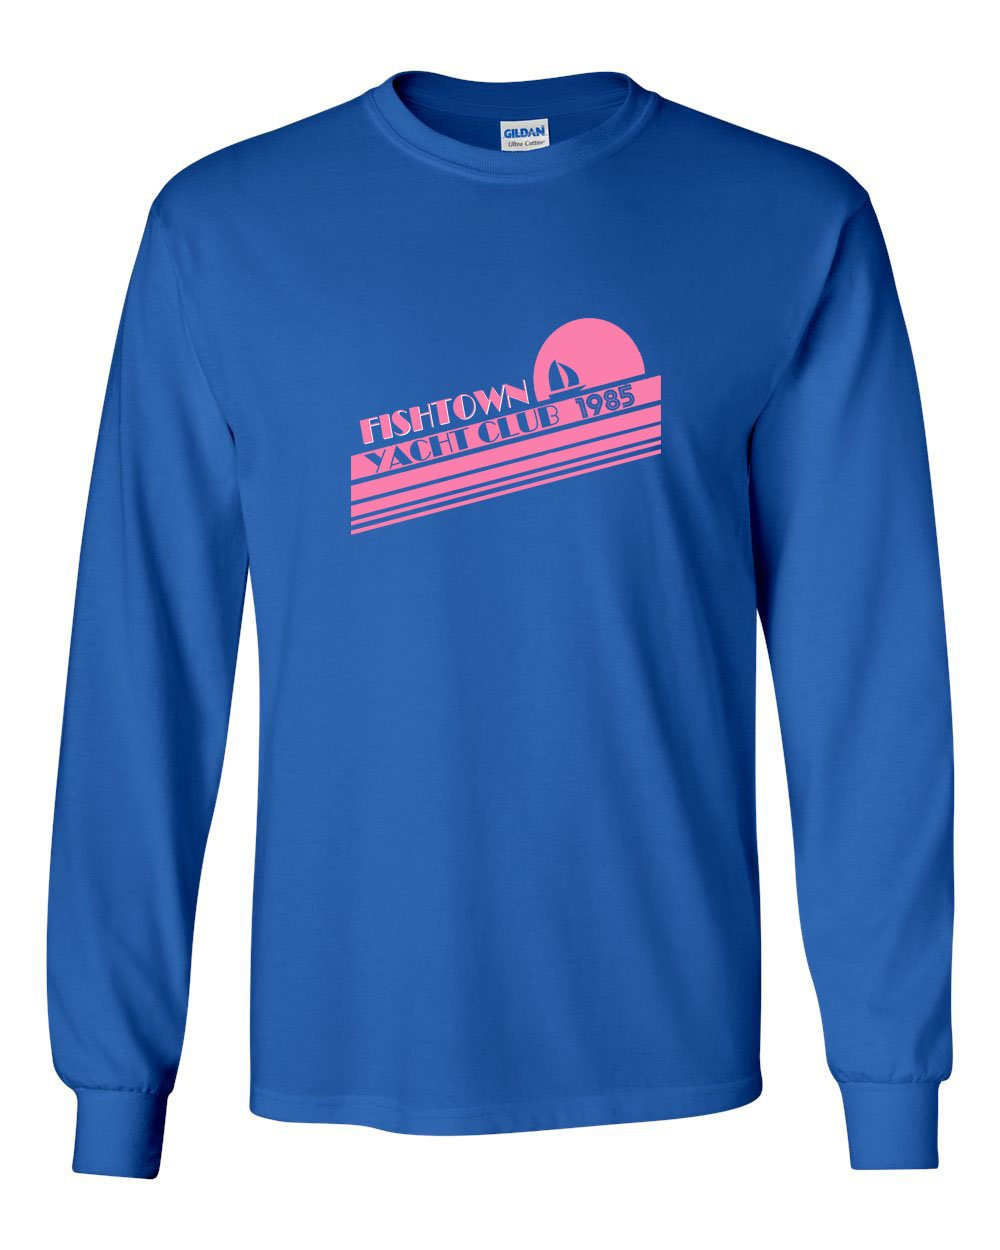 Fishtown Yacht Club MENS Long Sleeve Heavy Cotton T-Shirt